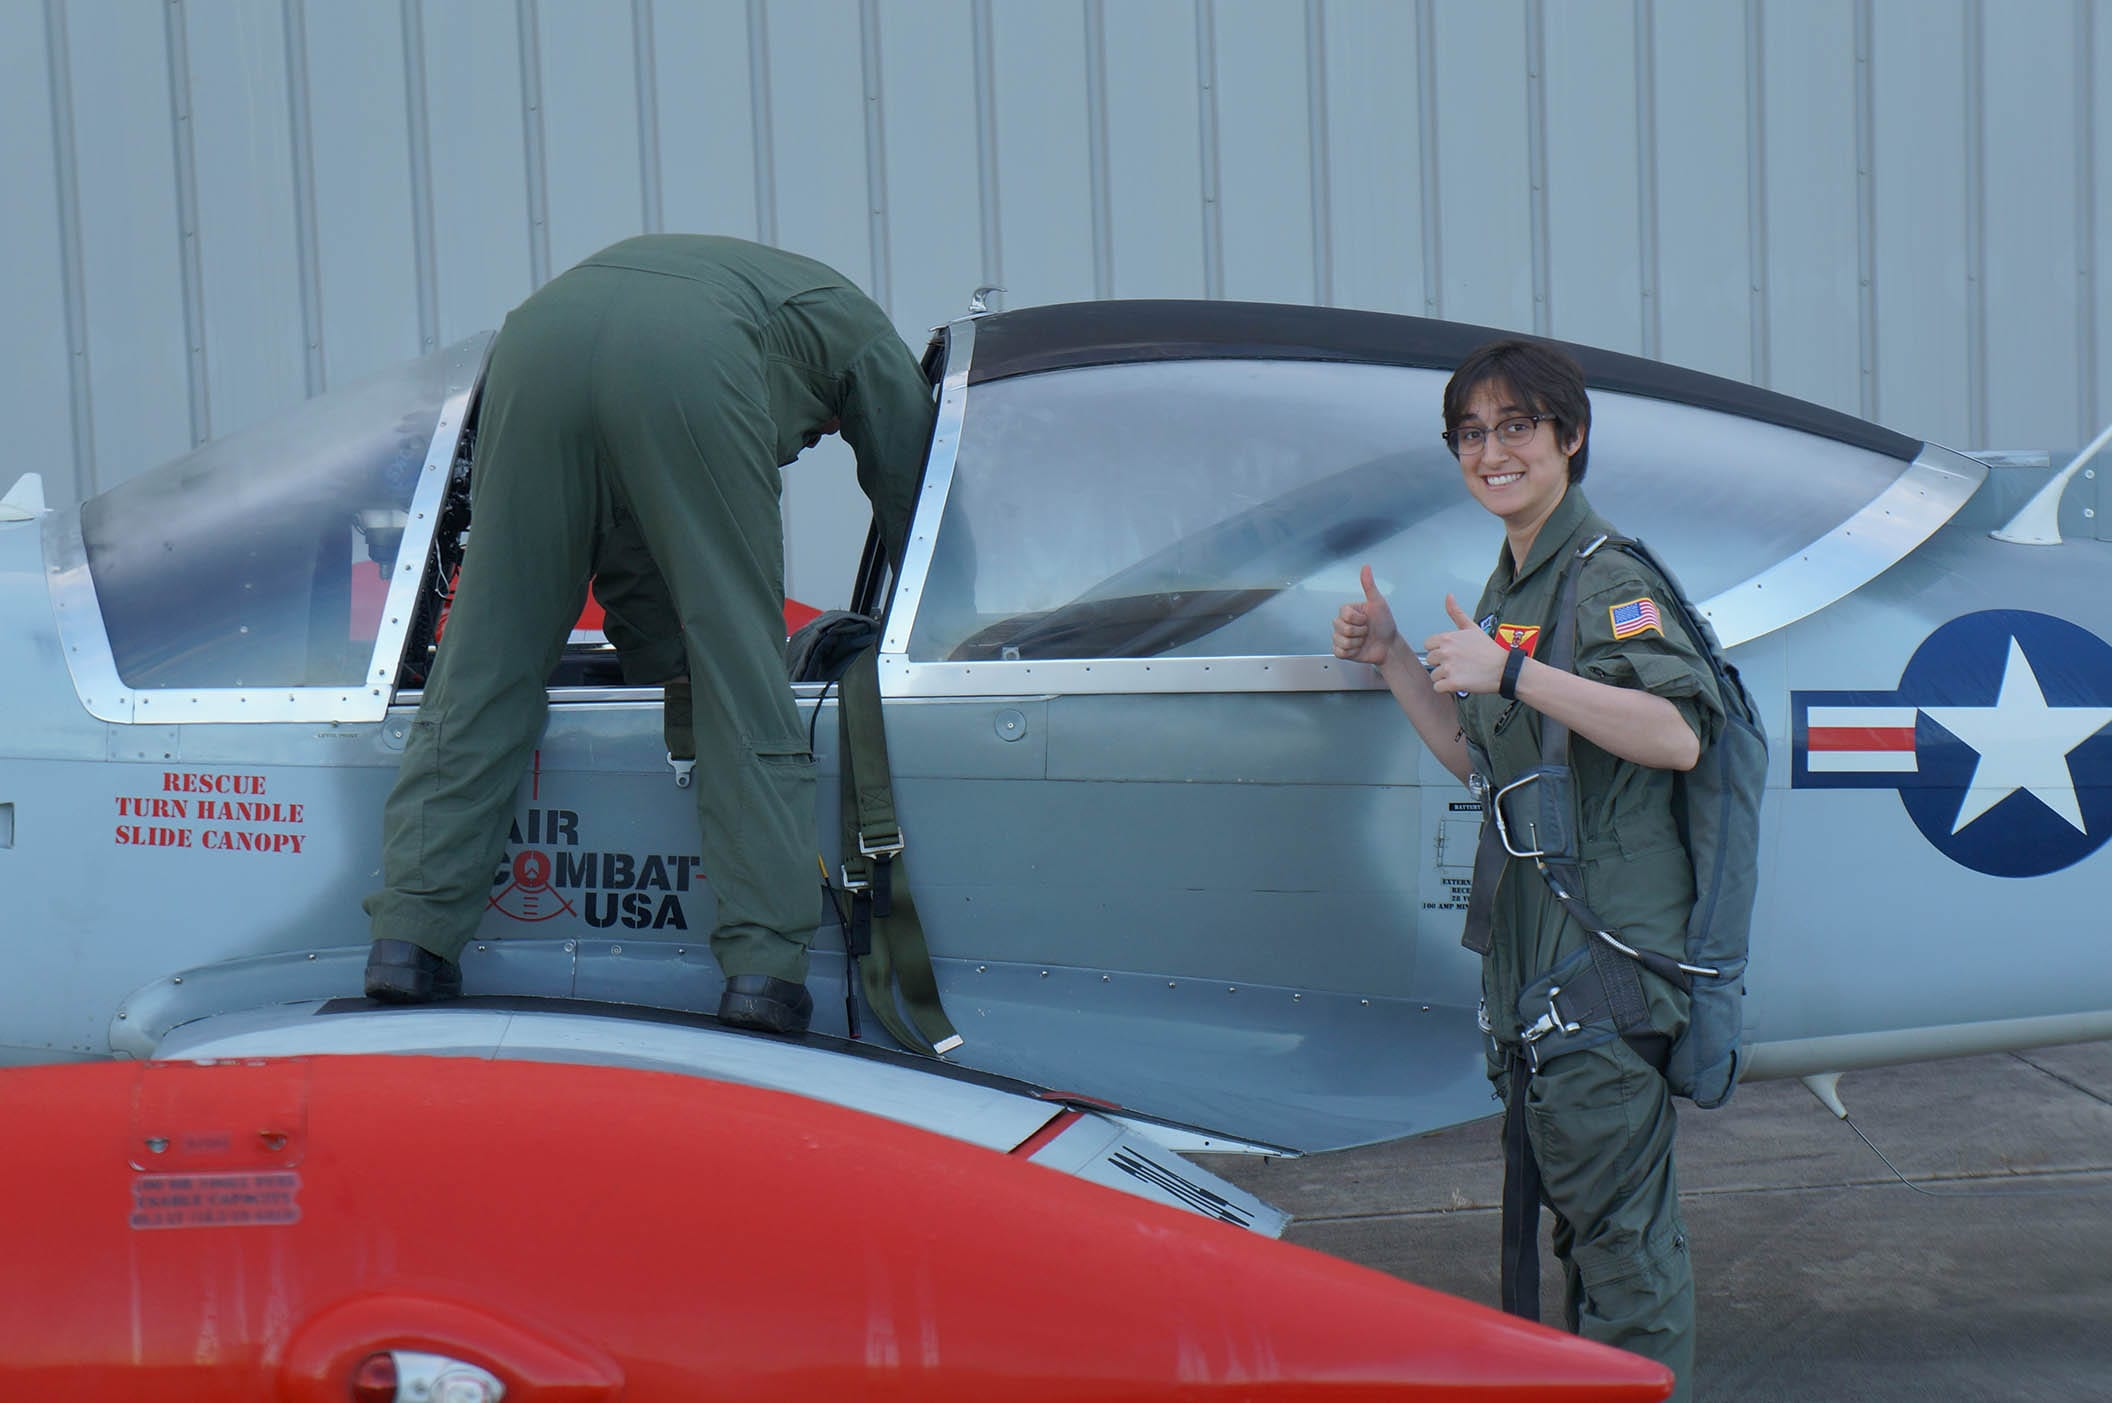 Miriam Kramer flashes a thumbs up before taking flight in a Marchetti SF 260 fighter jet. Photo courtesy of SPACE.com.